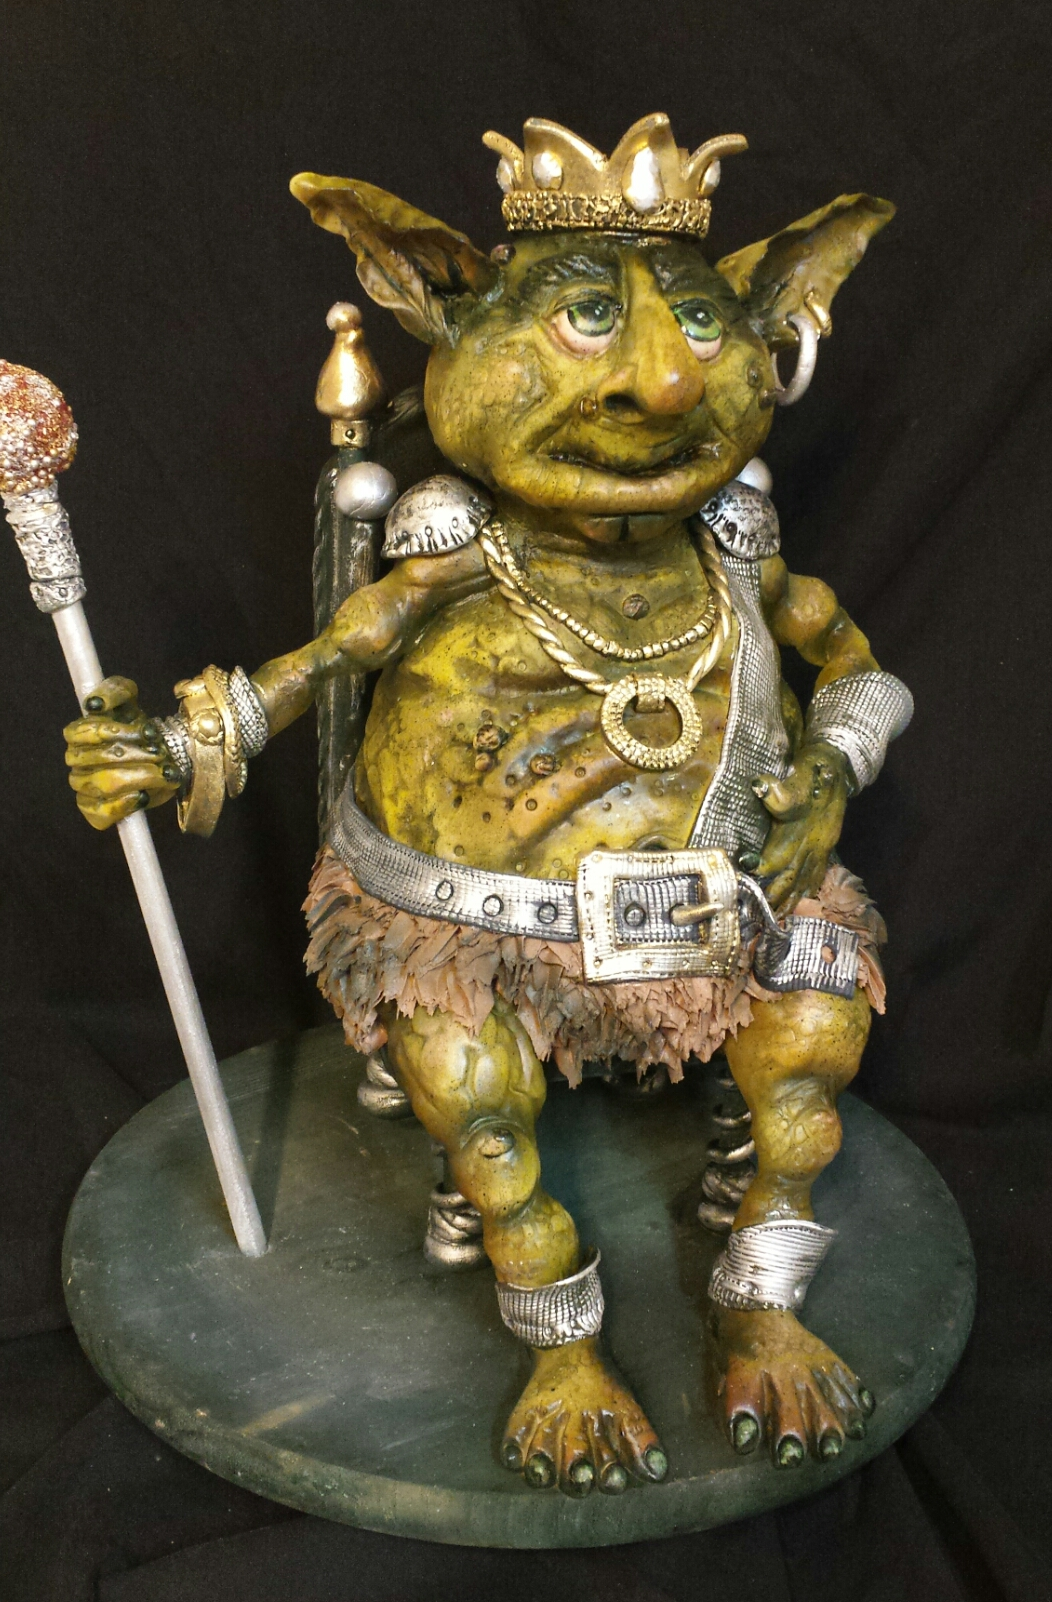 """King of the Goblins Cake"" - Beth Townsend - CakePro Shop - Sugar Spooks"